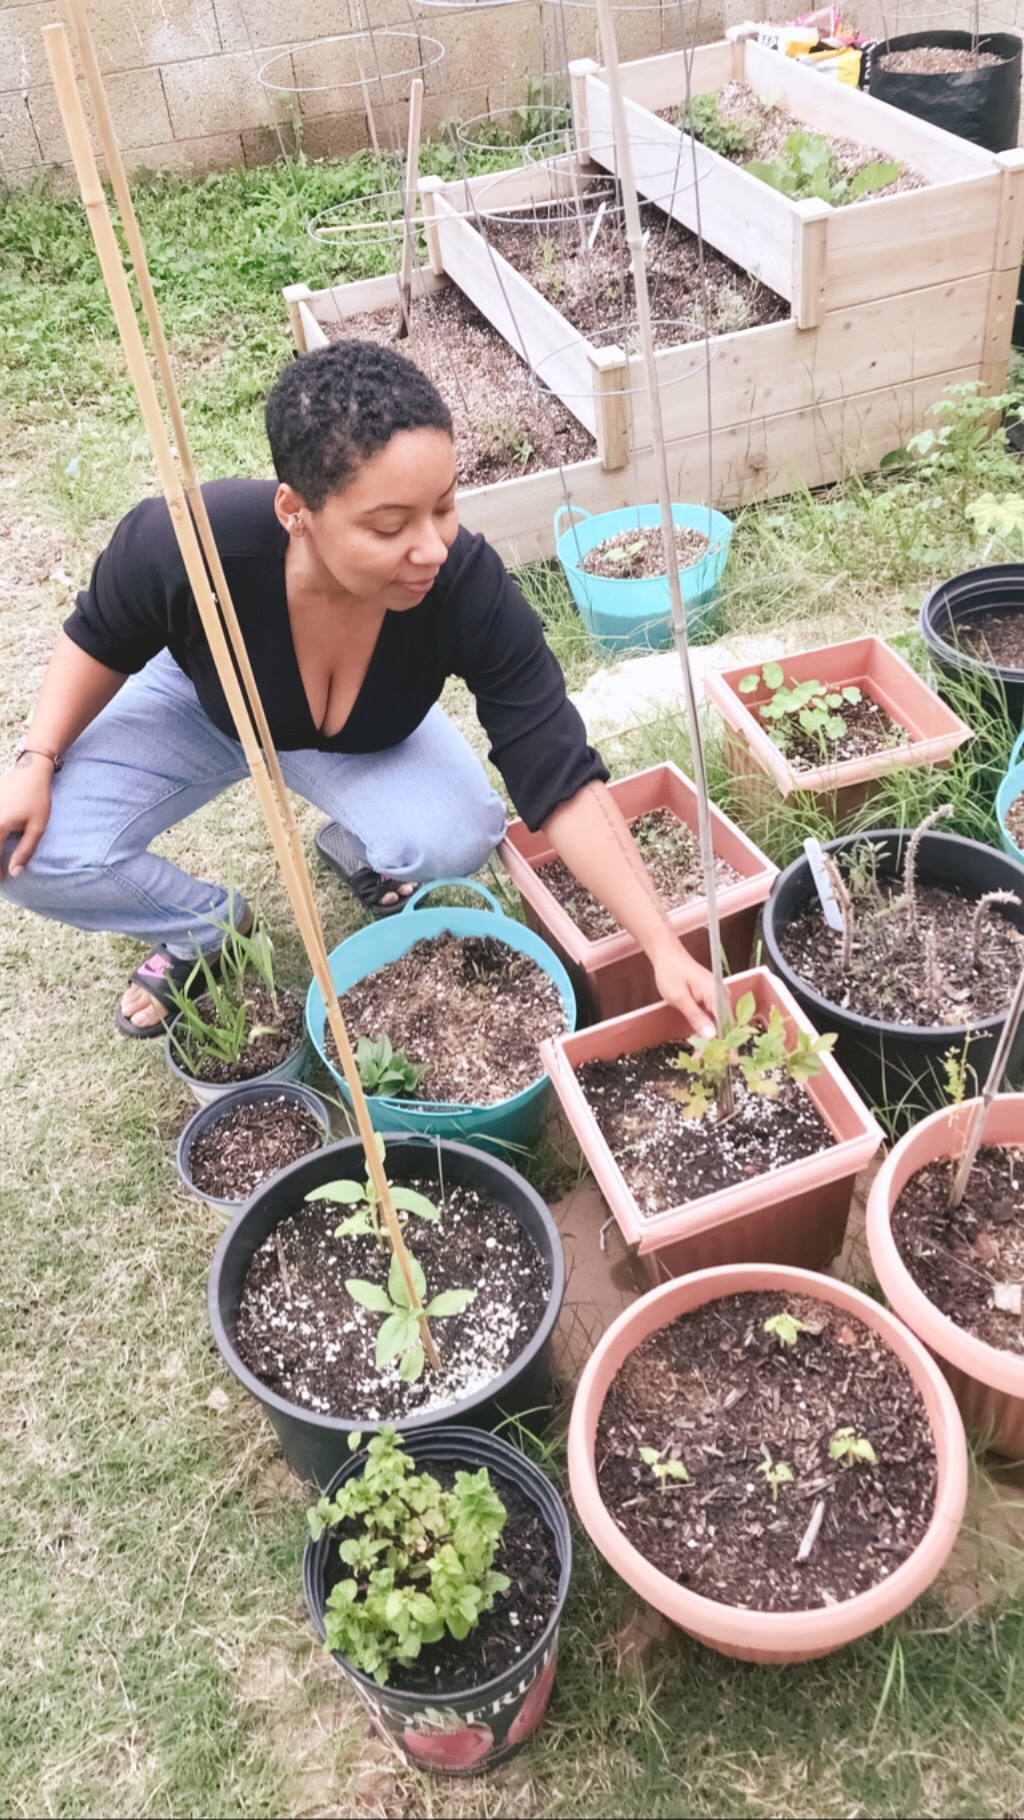 Container Gardening makes small-scale #urbanhomesteading possible with my conditions and assistance from my family! Photo Credit: My Son